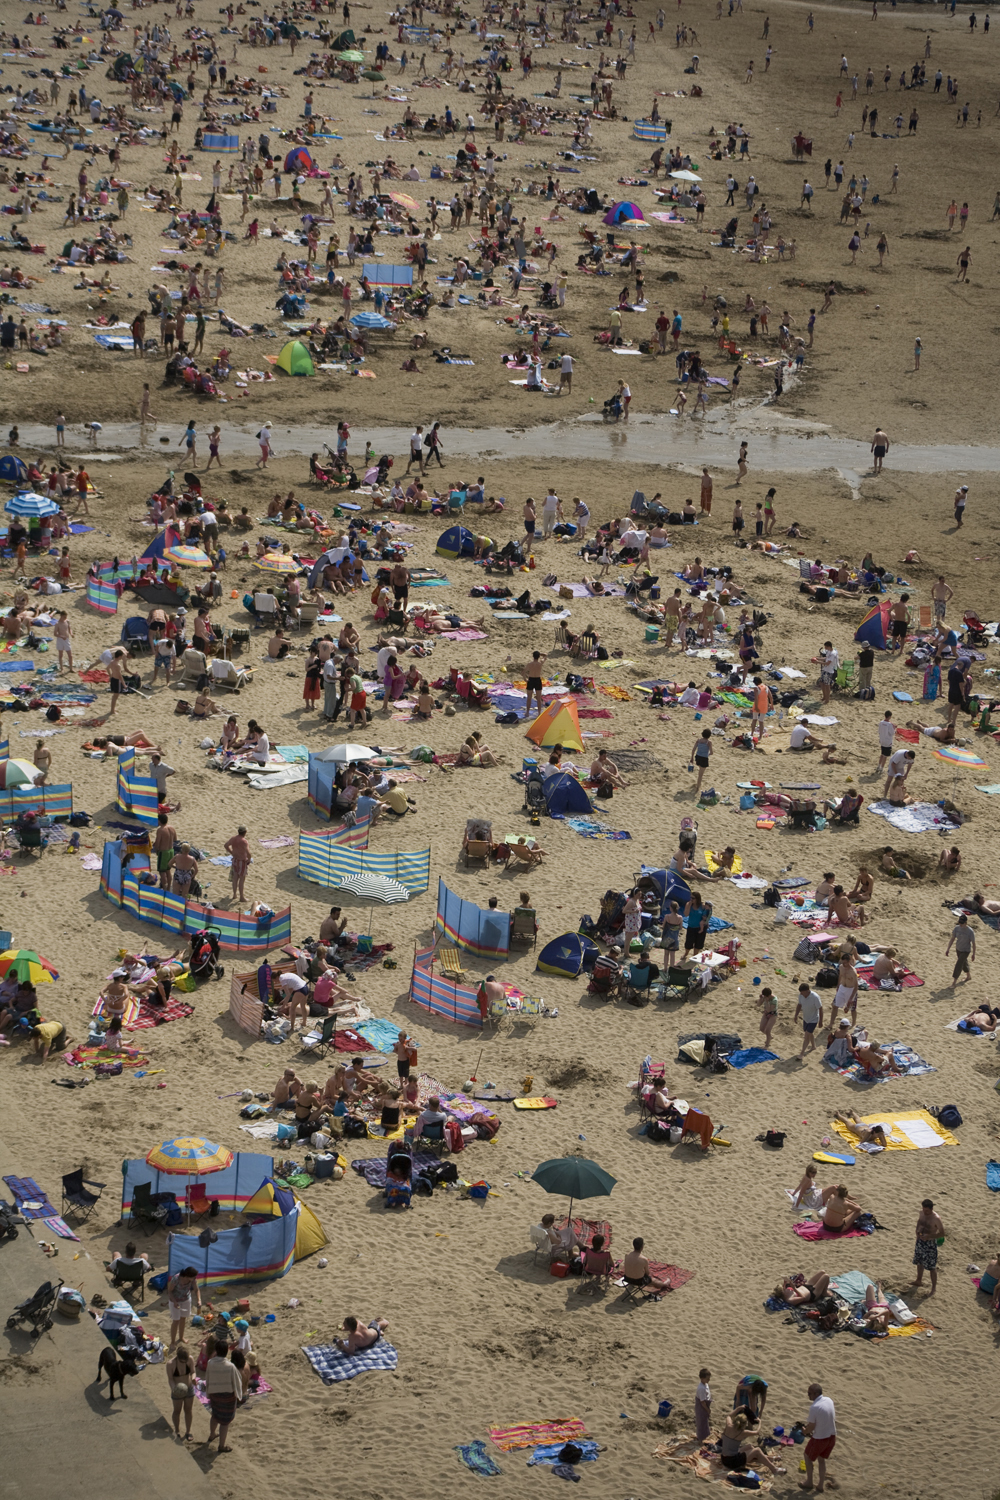 A documentary photograph of a crowded beach during a rare irish heat wave